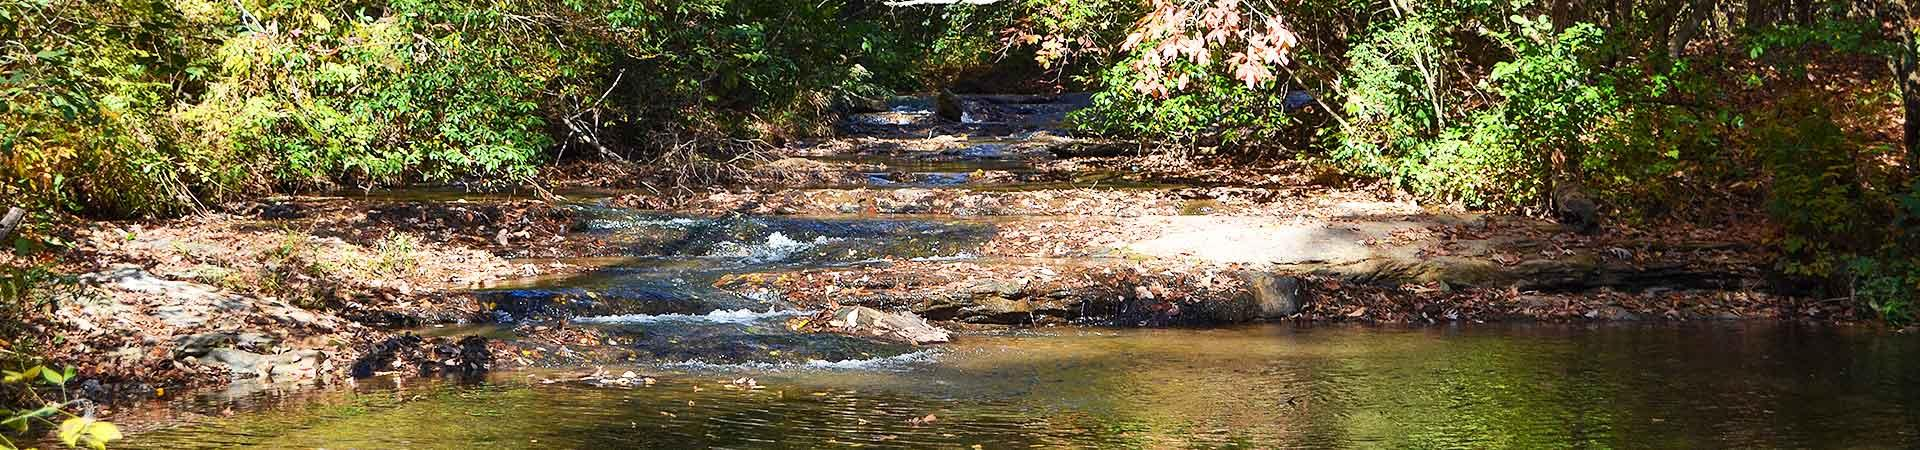 river flowing on rocks at Wilson Shoals Wildlife Management Area